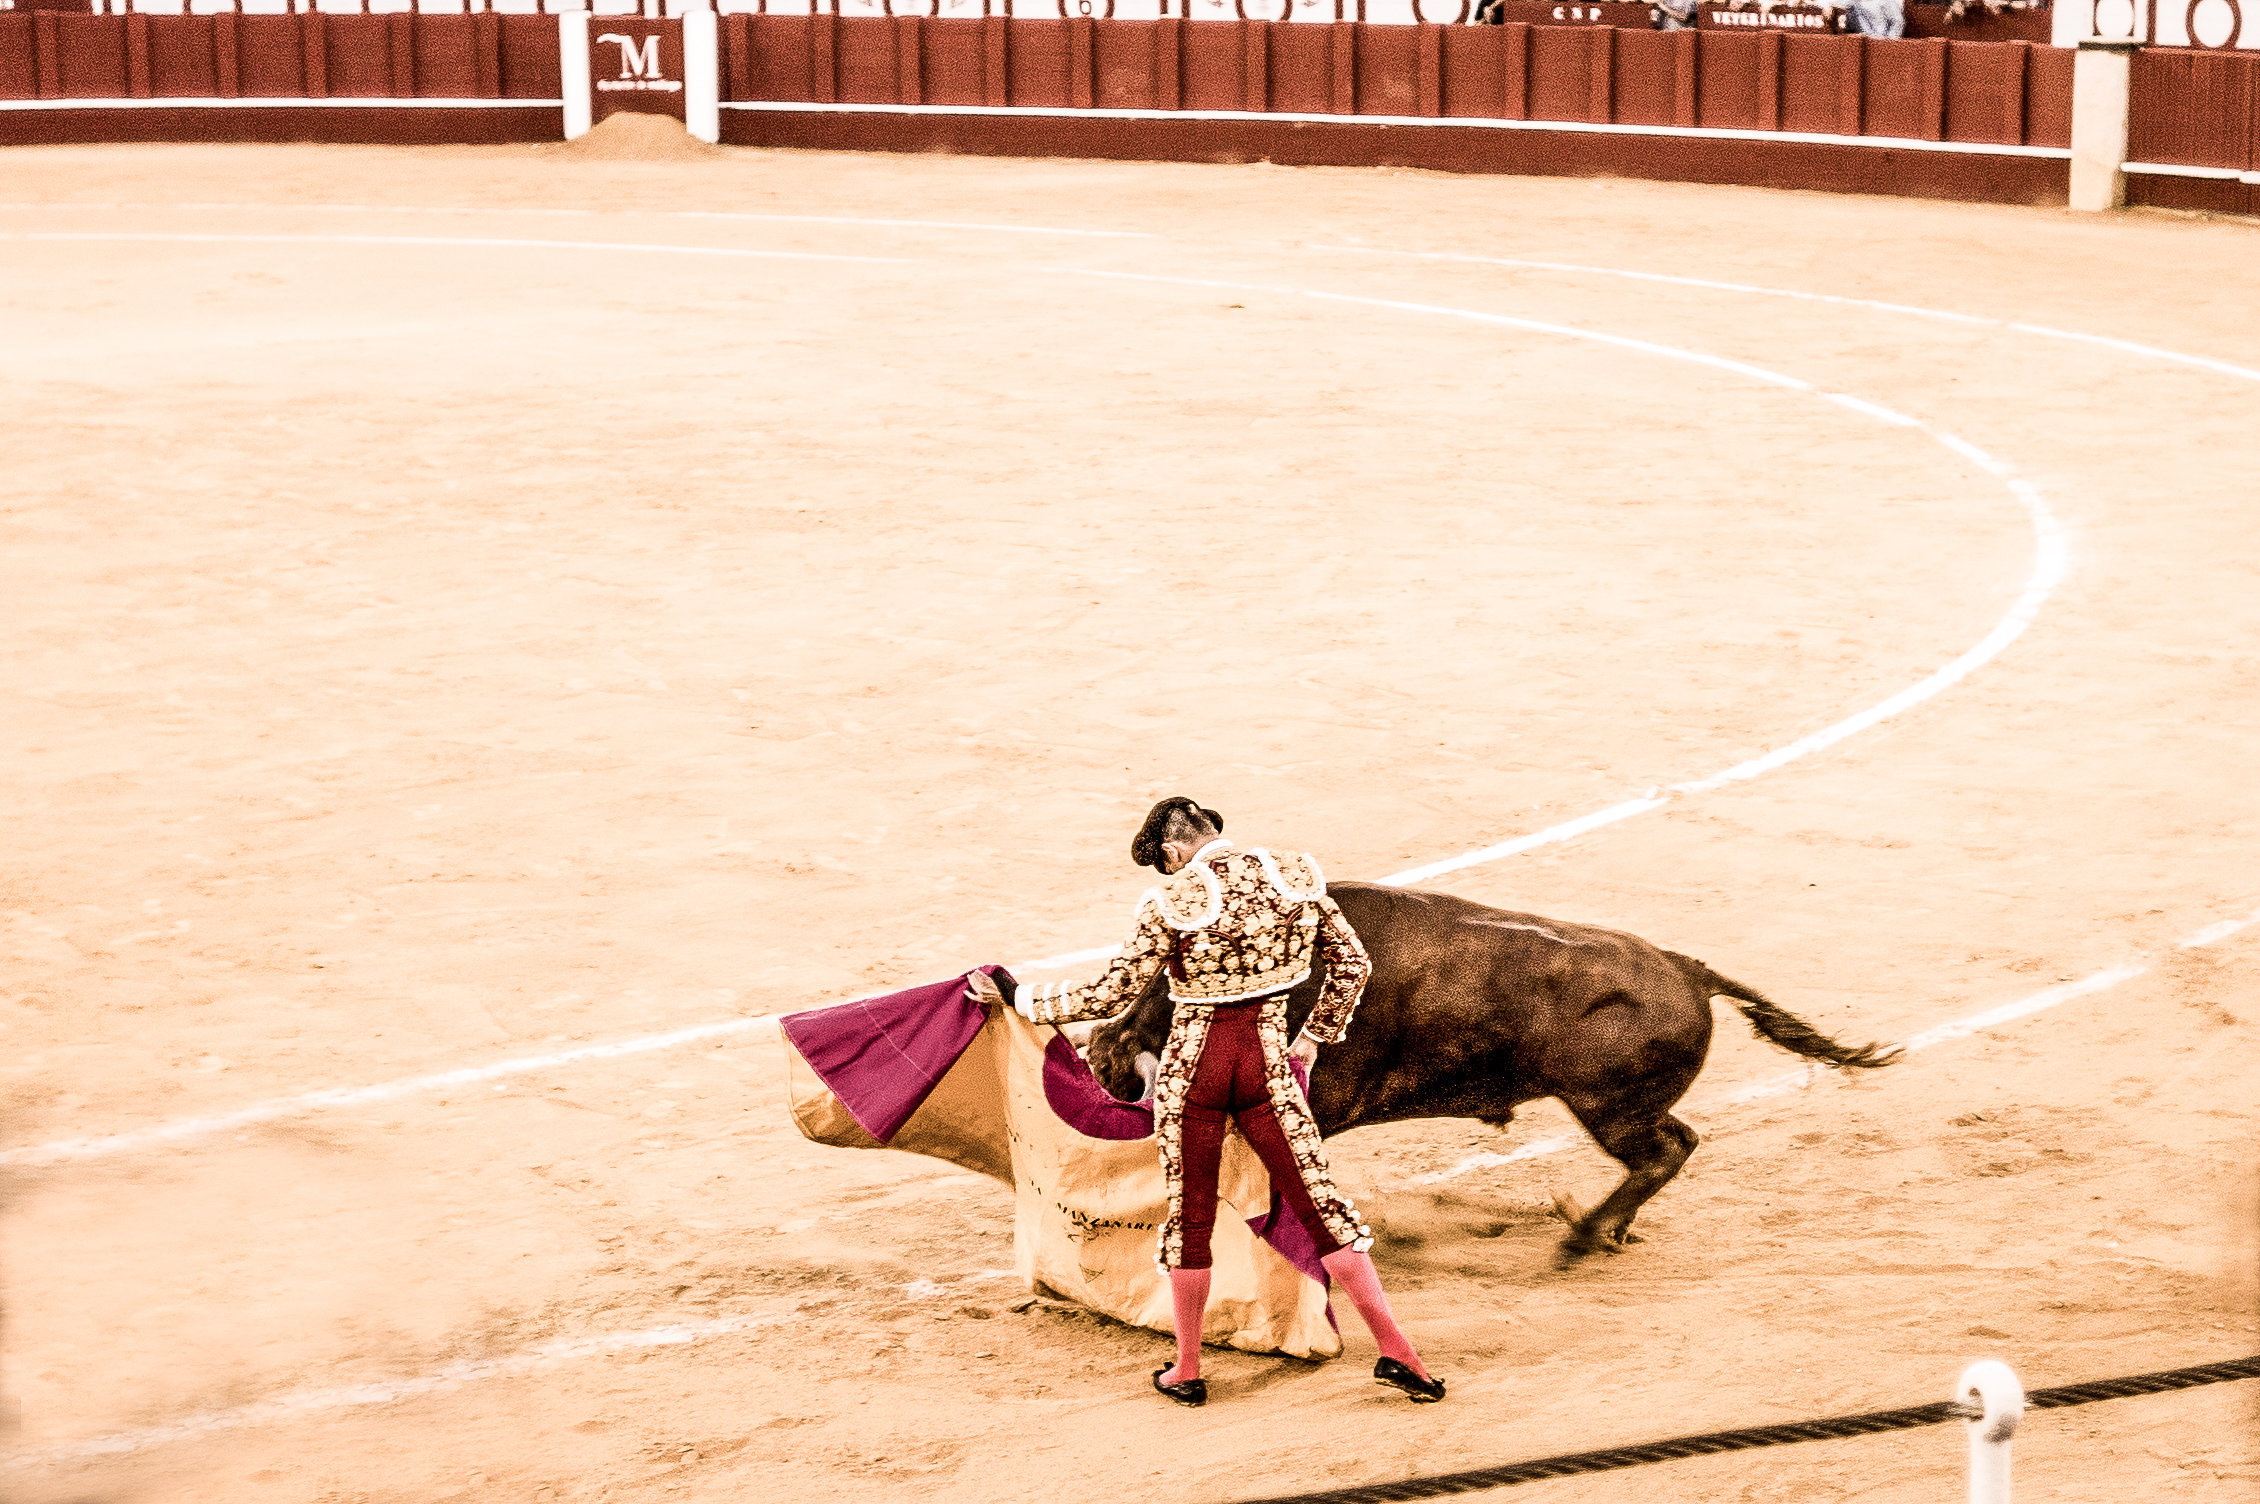 The Bullfight-190-bewerkt.jpg